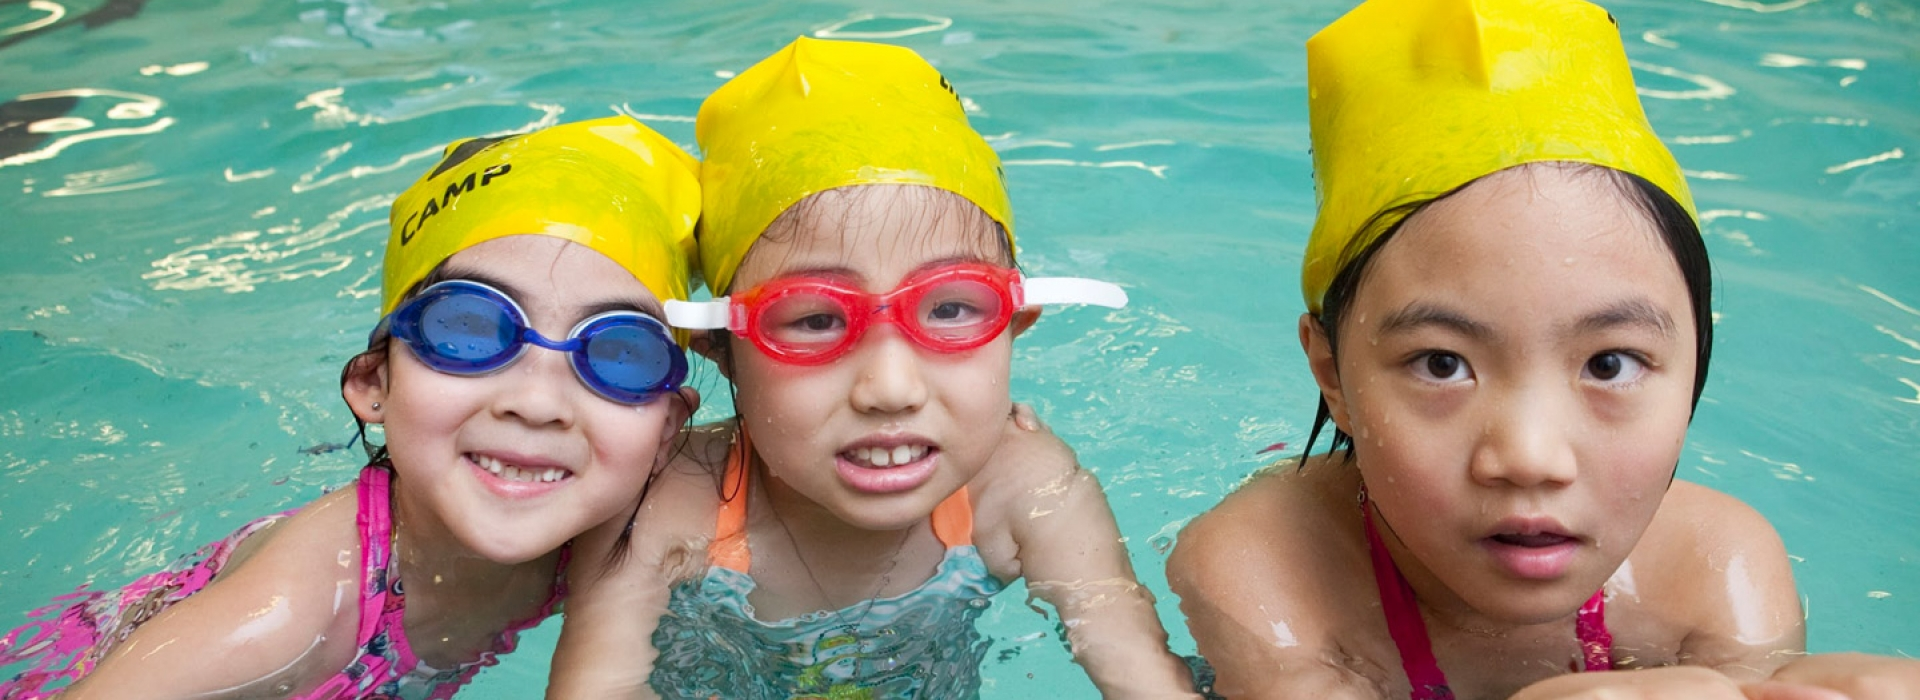 Summer Camp at the LIC YMCA: Safe, Affordable, and Fun for Kids